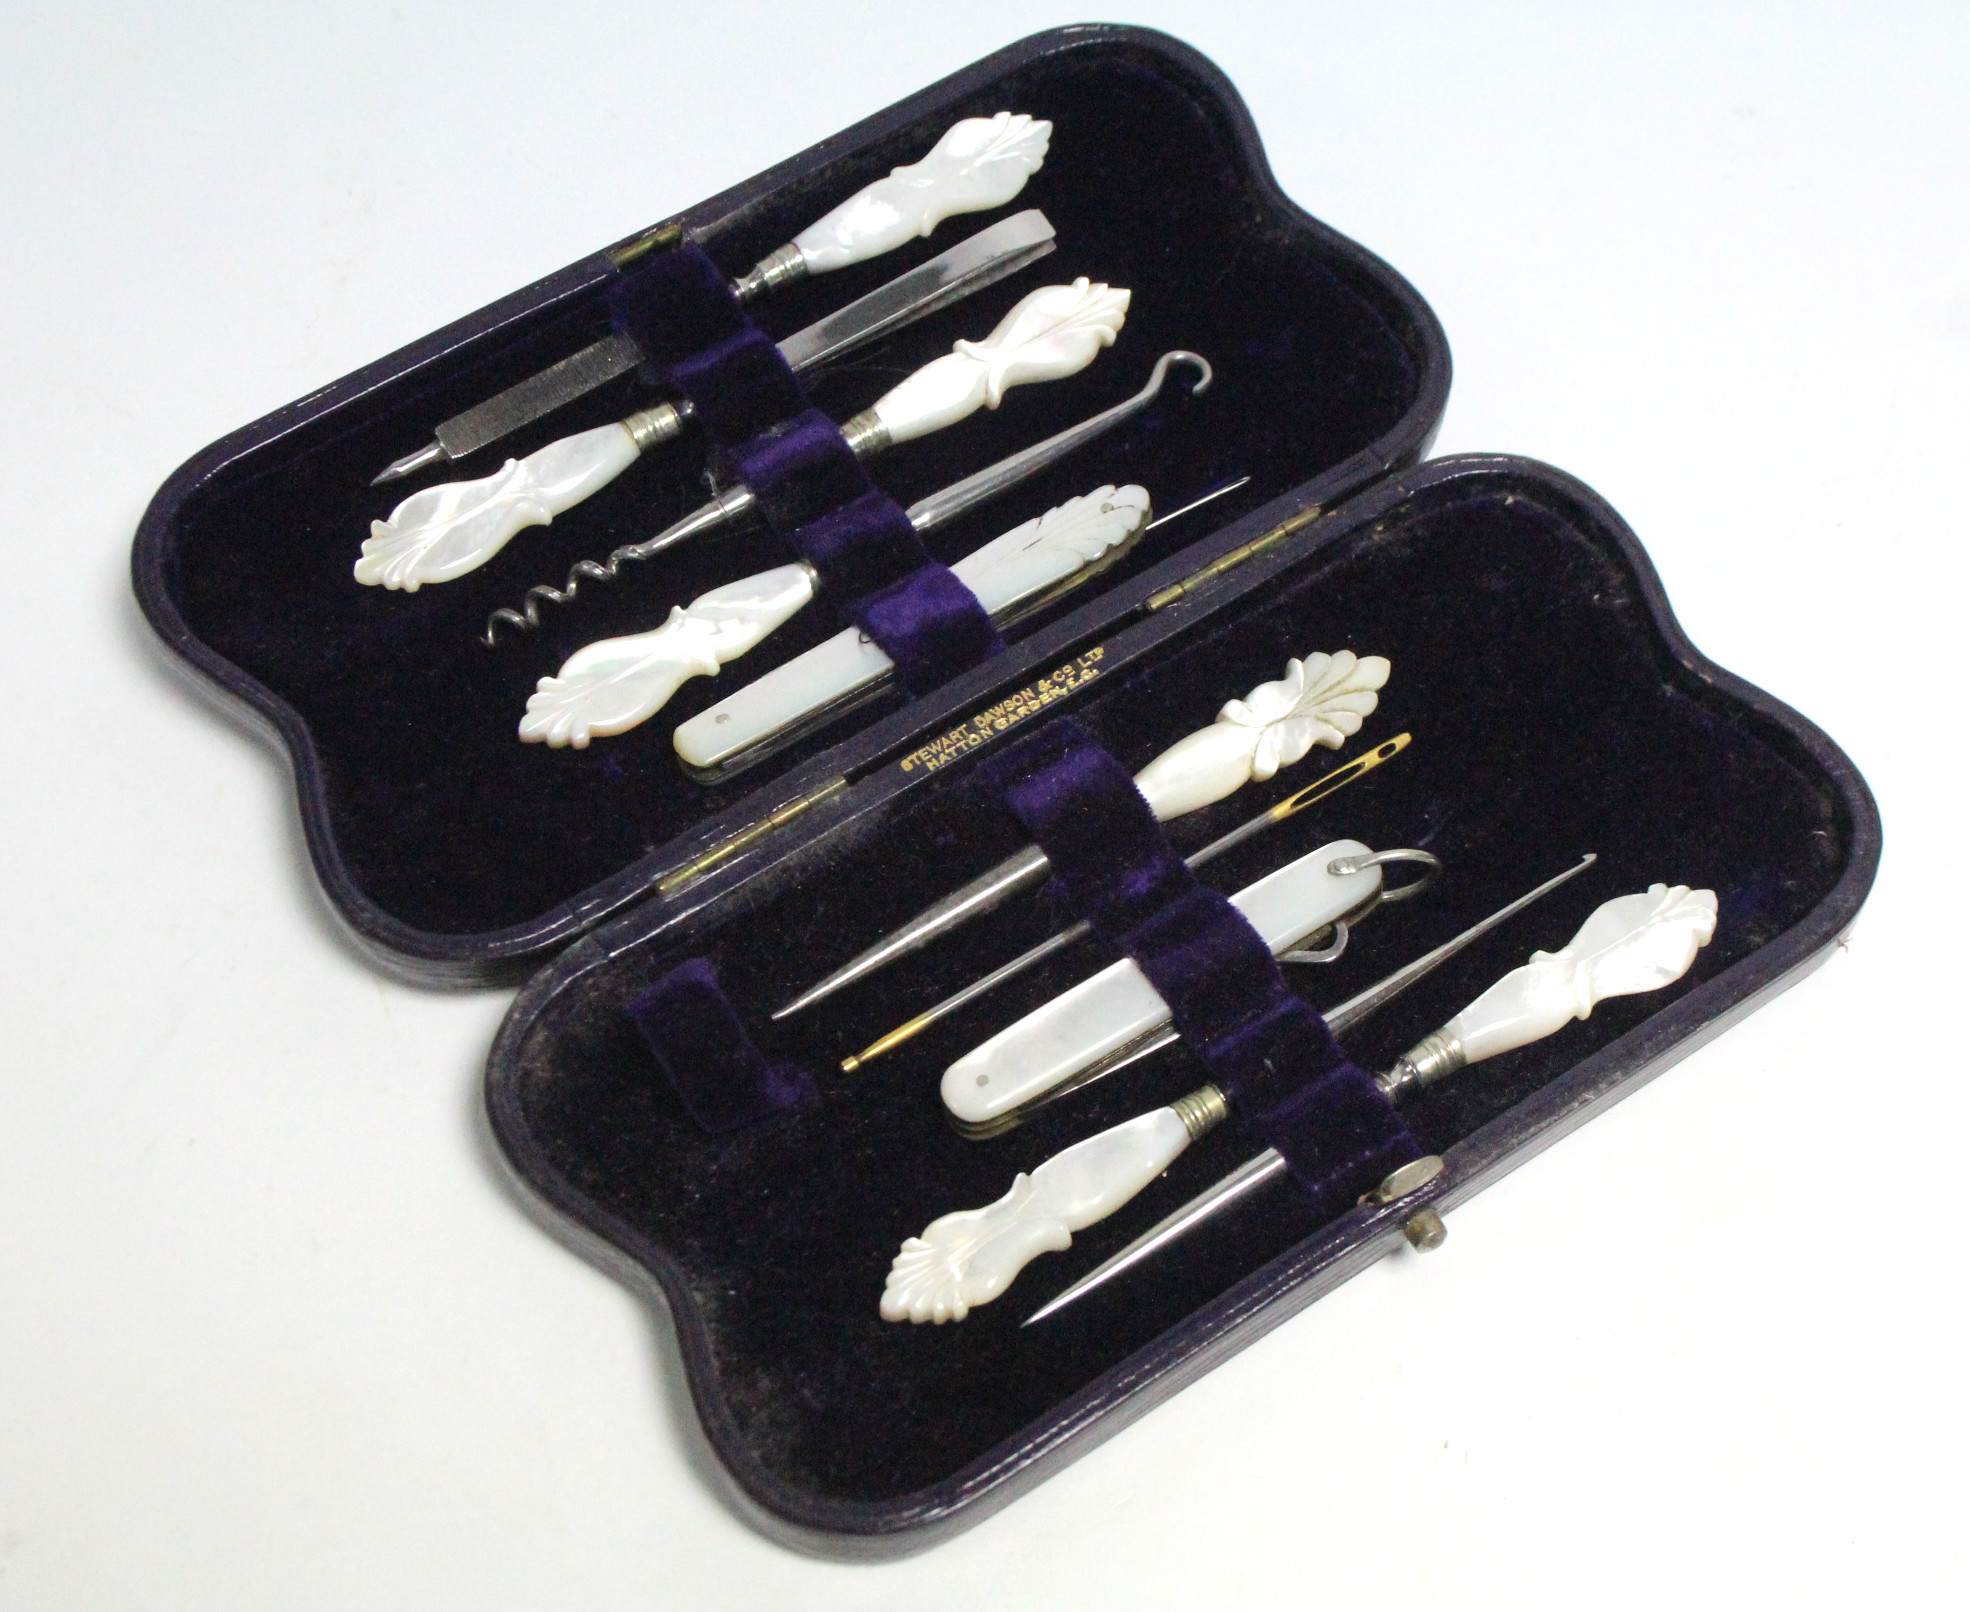 Lot 195 - A set of ten late 19th/early 20th century steel needlework implements, each with mother-of-pearl